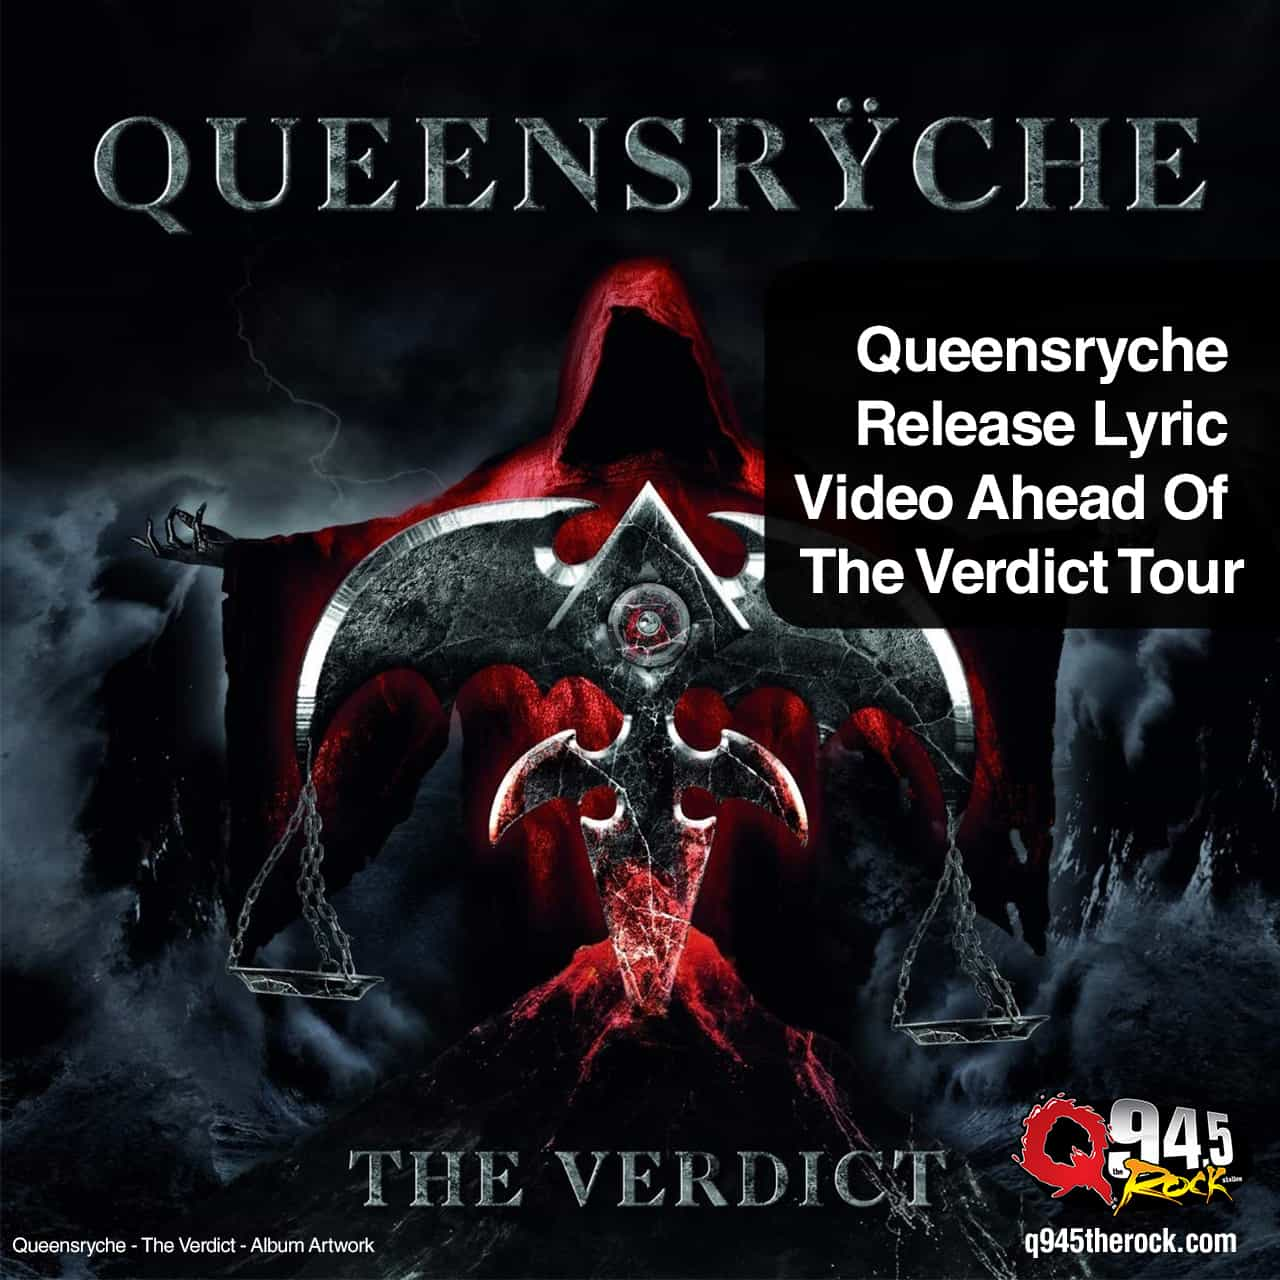 Queensryche Release Lyric Video Ahead Of The Verdict Tour